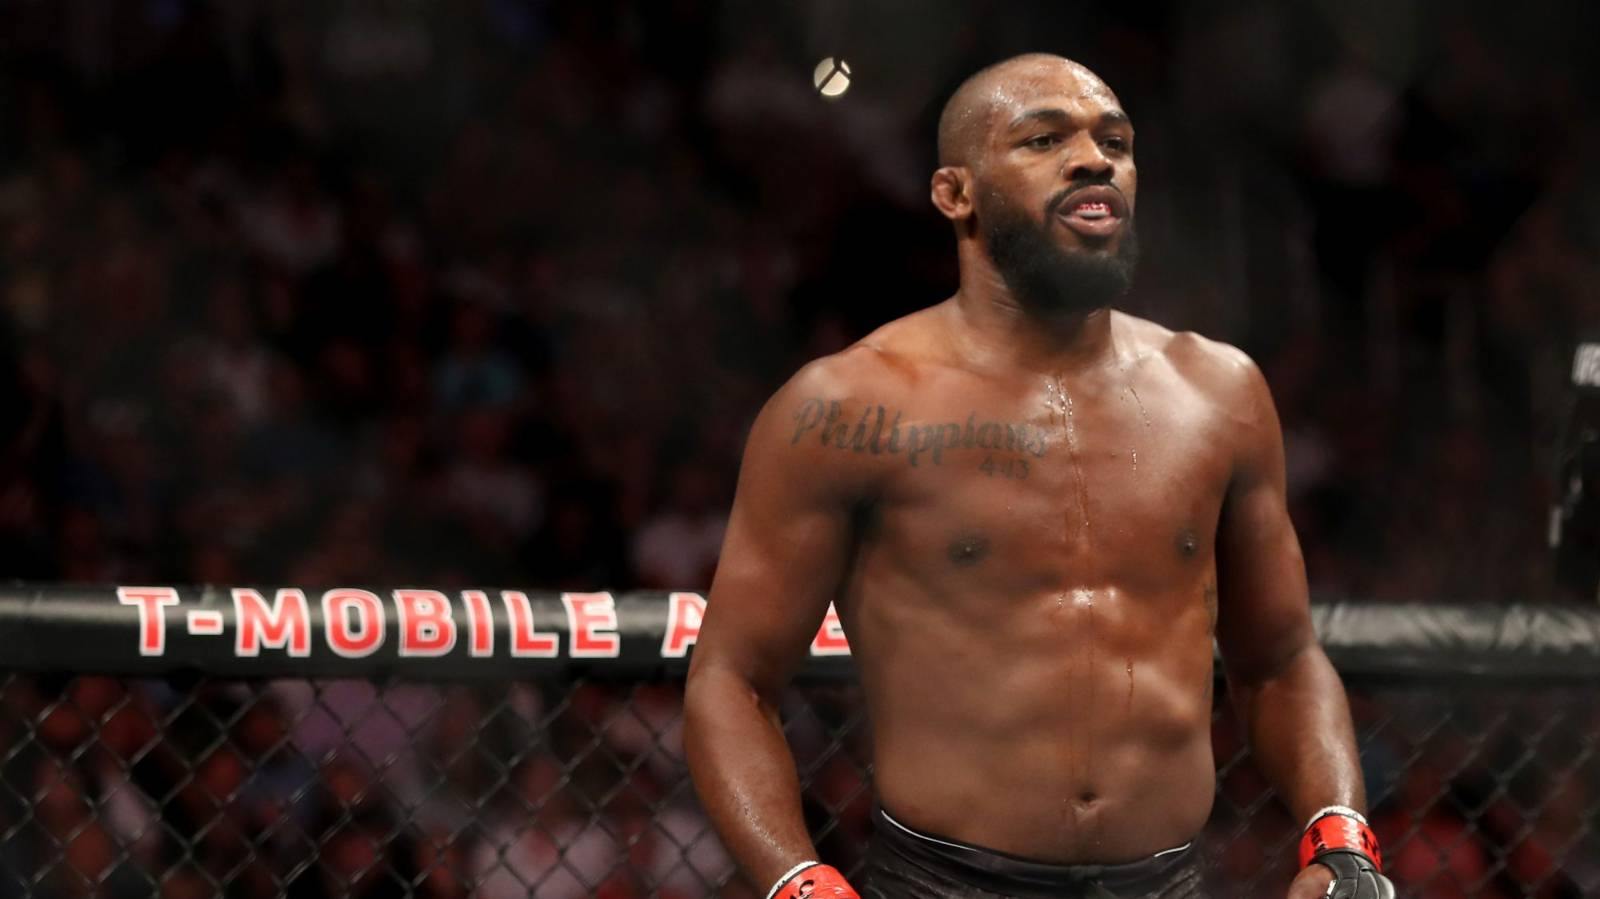 'All hail the King': Daniel Cormier claims Adesanya will be two-weight champion